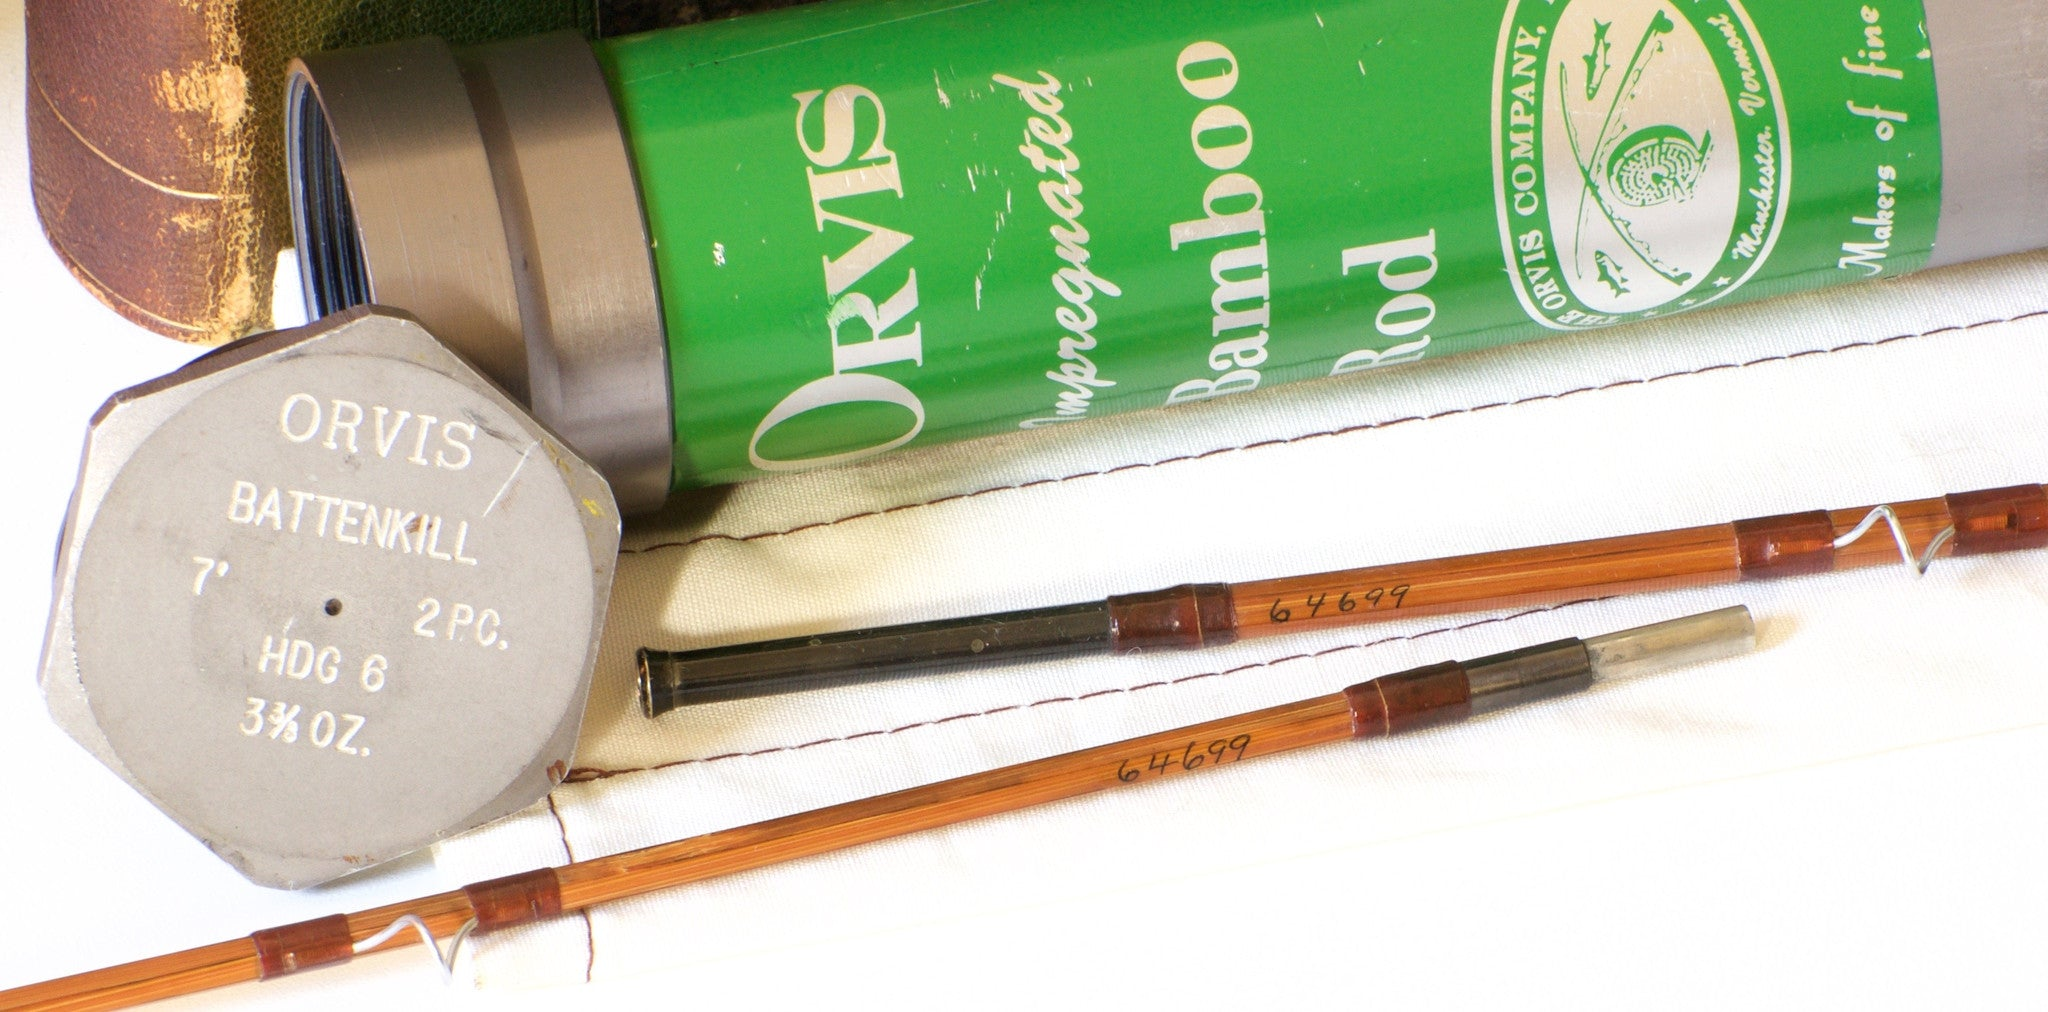 Orvis Battenkill 7 3 3 8 Oz Bamboo Rod Vintage Fly Tackle